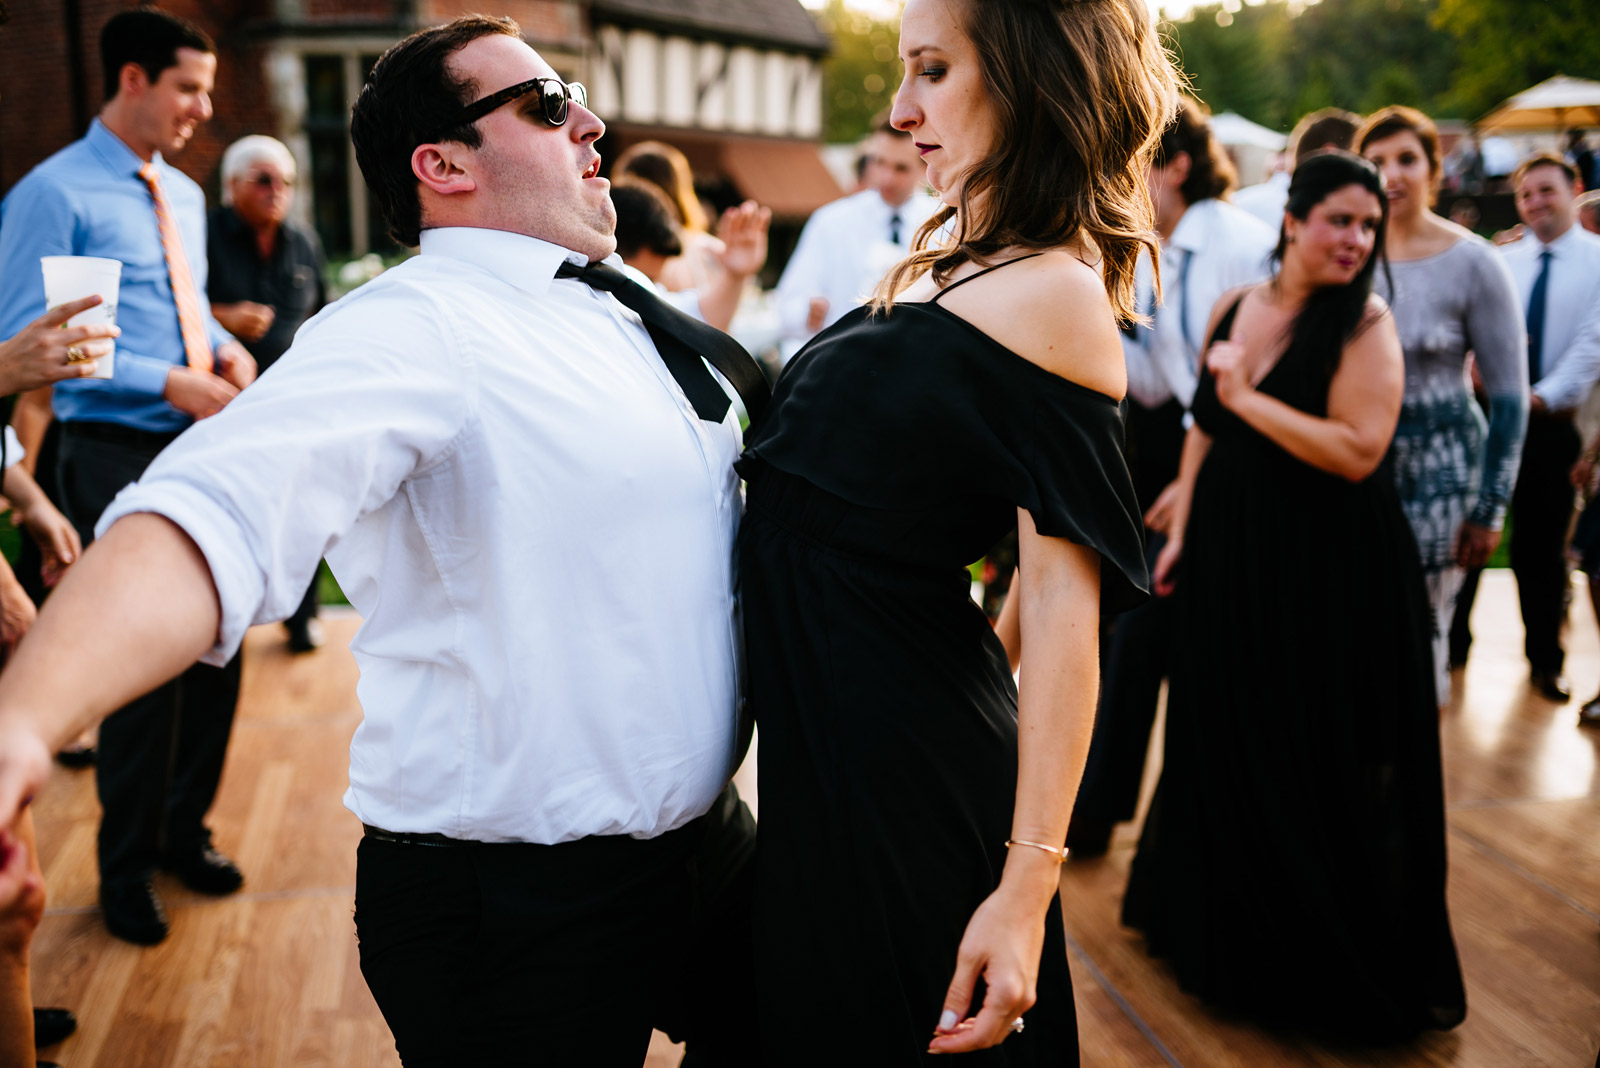 groomsman bridesmaid dancefloor chest bump